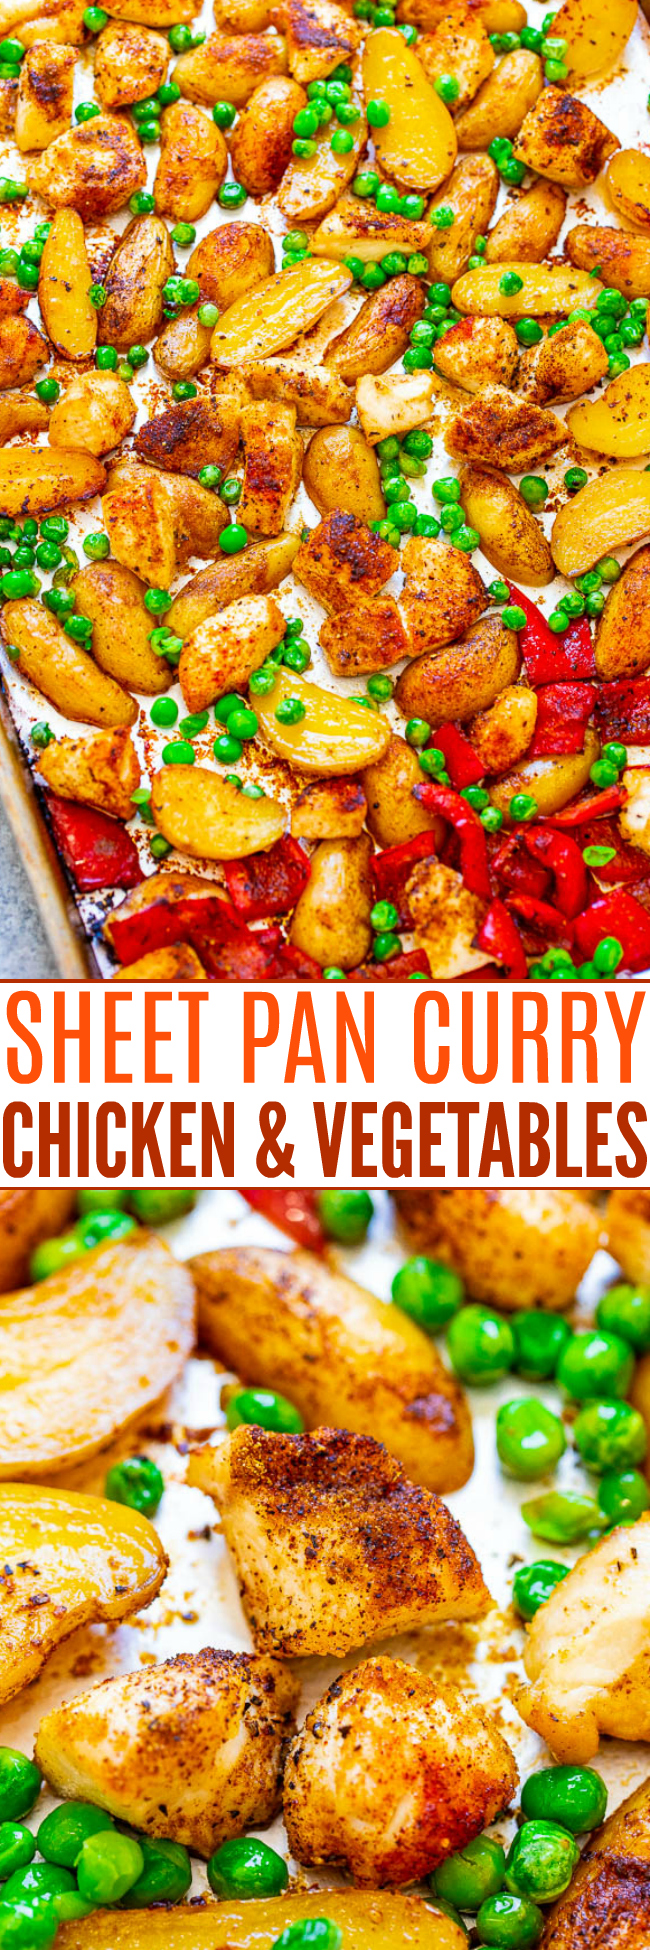 Sheet Pan Curry Chicken and Vegetables - An EASY Indian-inspired meal that's ready in 30 minutes, made on ONE pan, and great for meal prep or busy weeknights!! There's so much CURRY FLAVOR in every bite!!